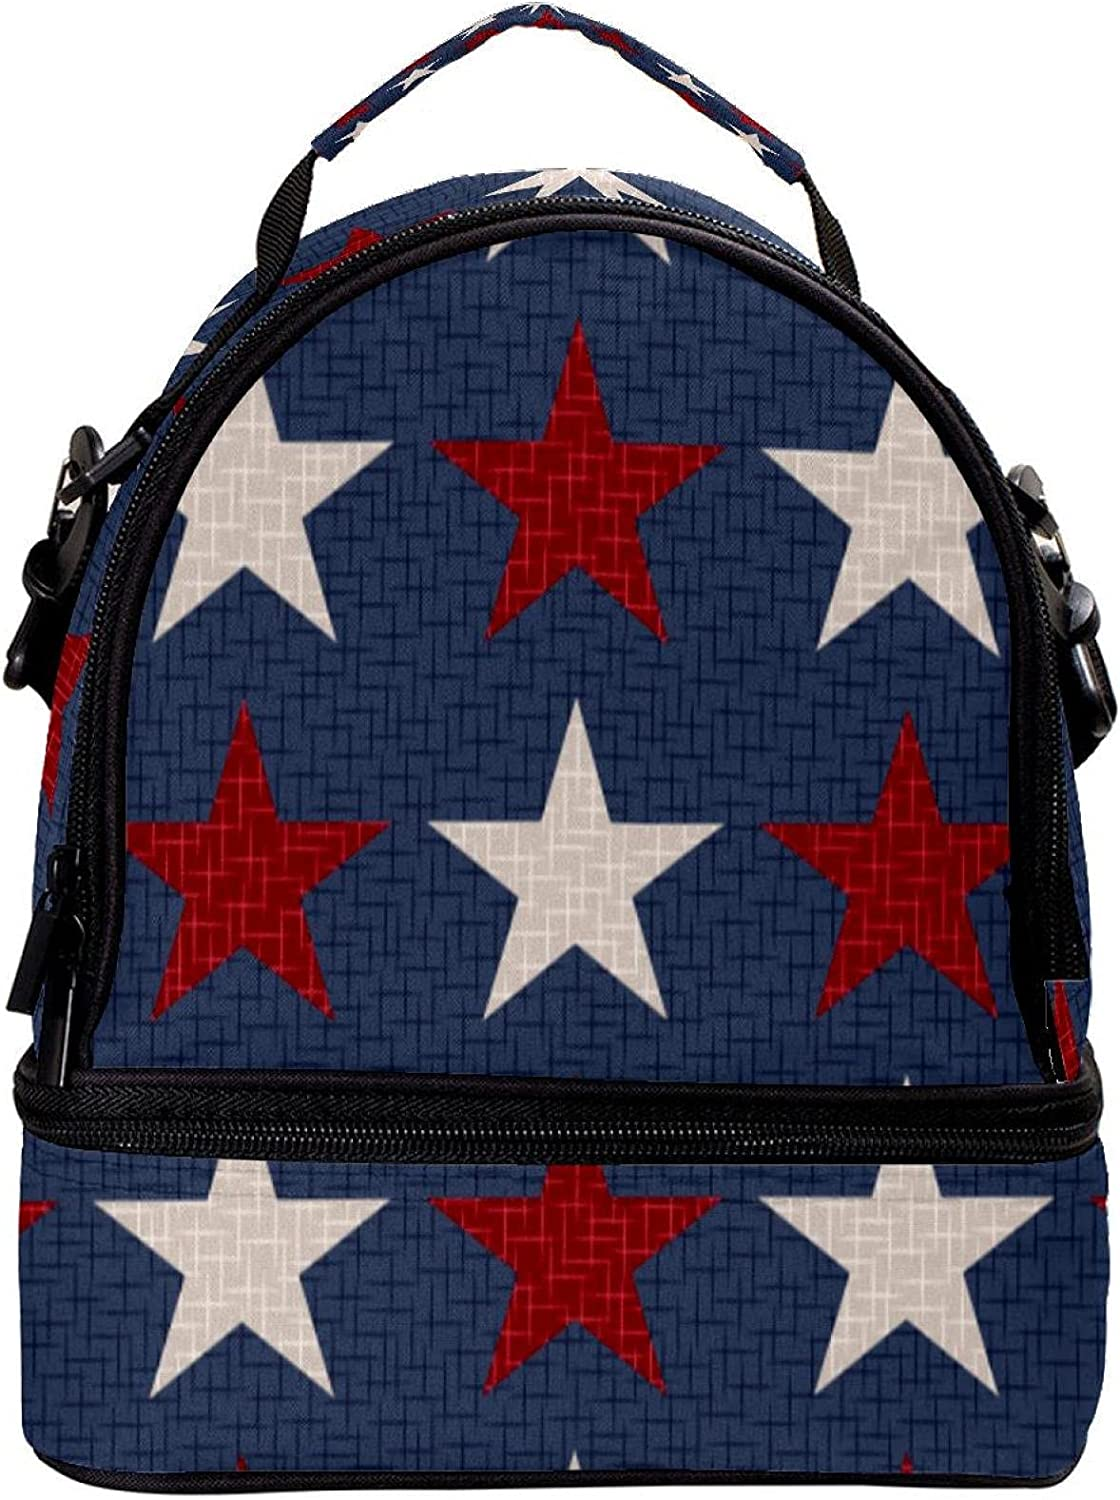 GIOVANIOR Patriotic Red White Stars Max 69% OFF Bo Bag Lunch Insulated Limited Special Price